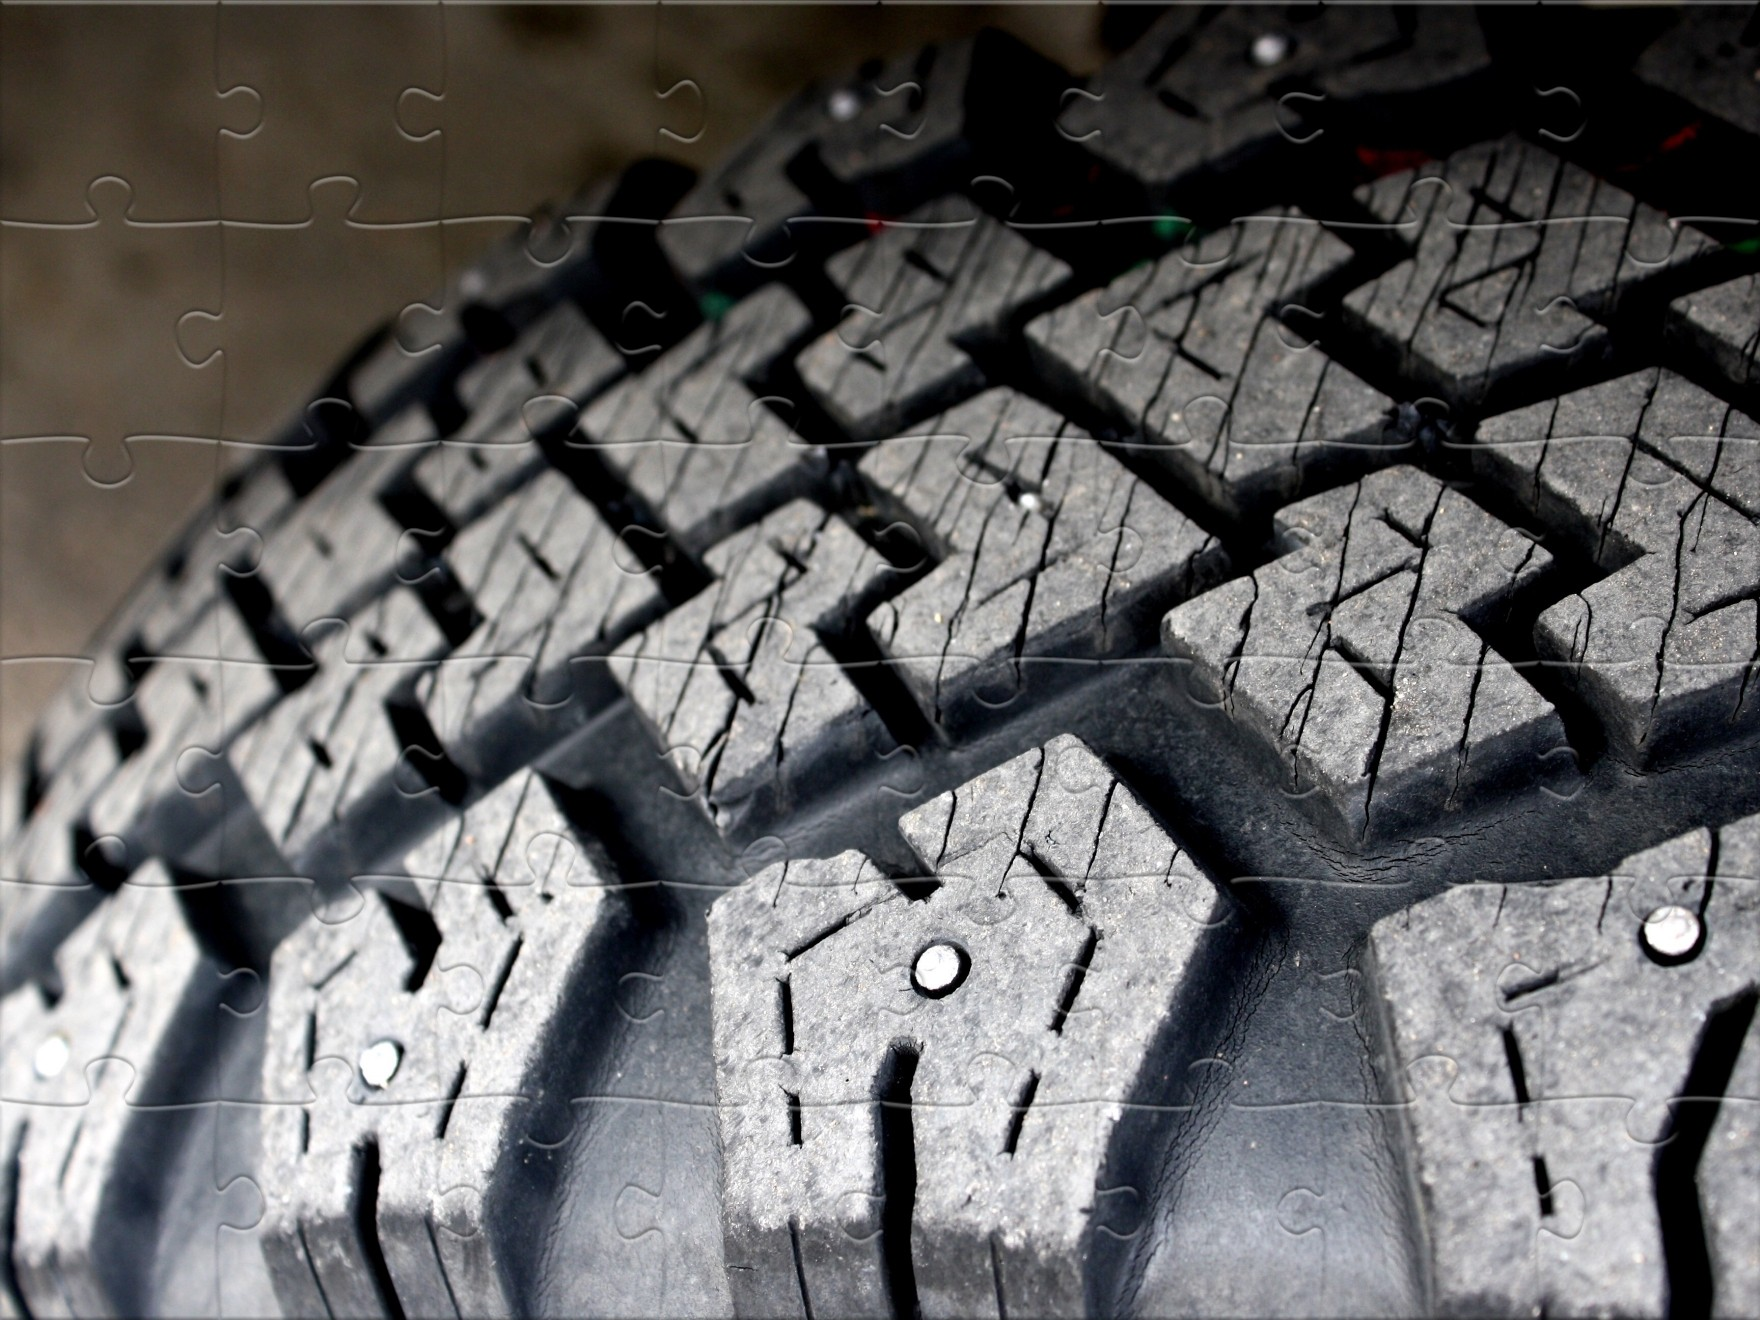 ban studded tires essay Like danny, studded tires have a bad rap, perhaps well earned their biggest downfall is their appetite for asphalt they chew up roads, increasing wear and an effort to ban them failed to make the ballot earlier this year in oregon, where some estimates place the studded-tire road damage bill up to $40.